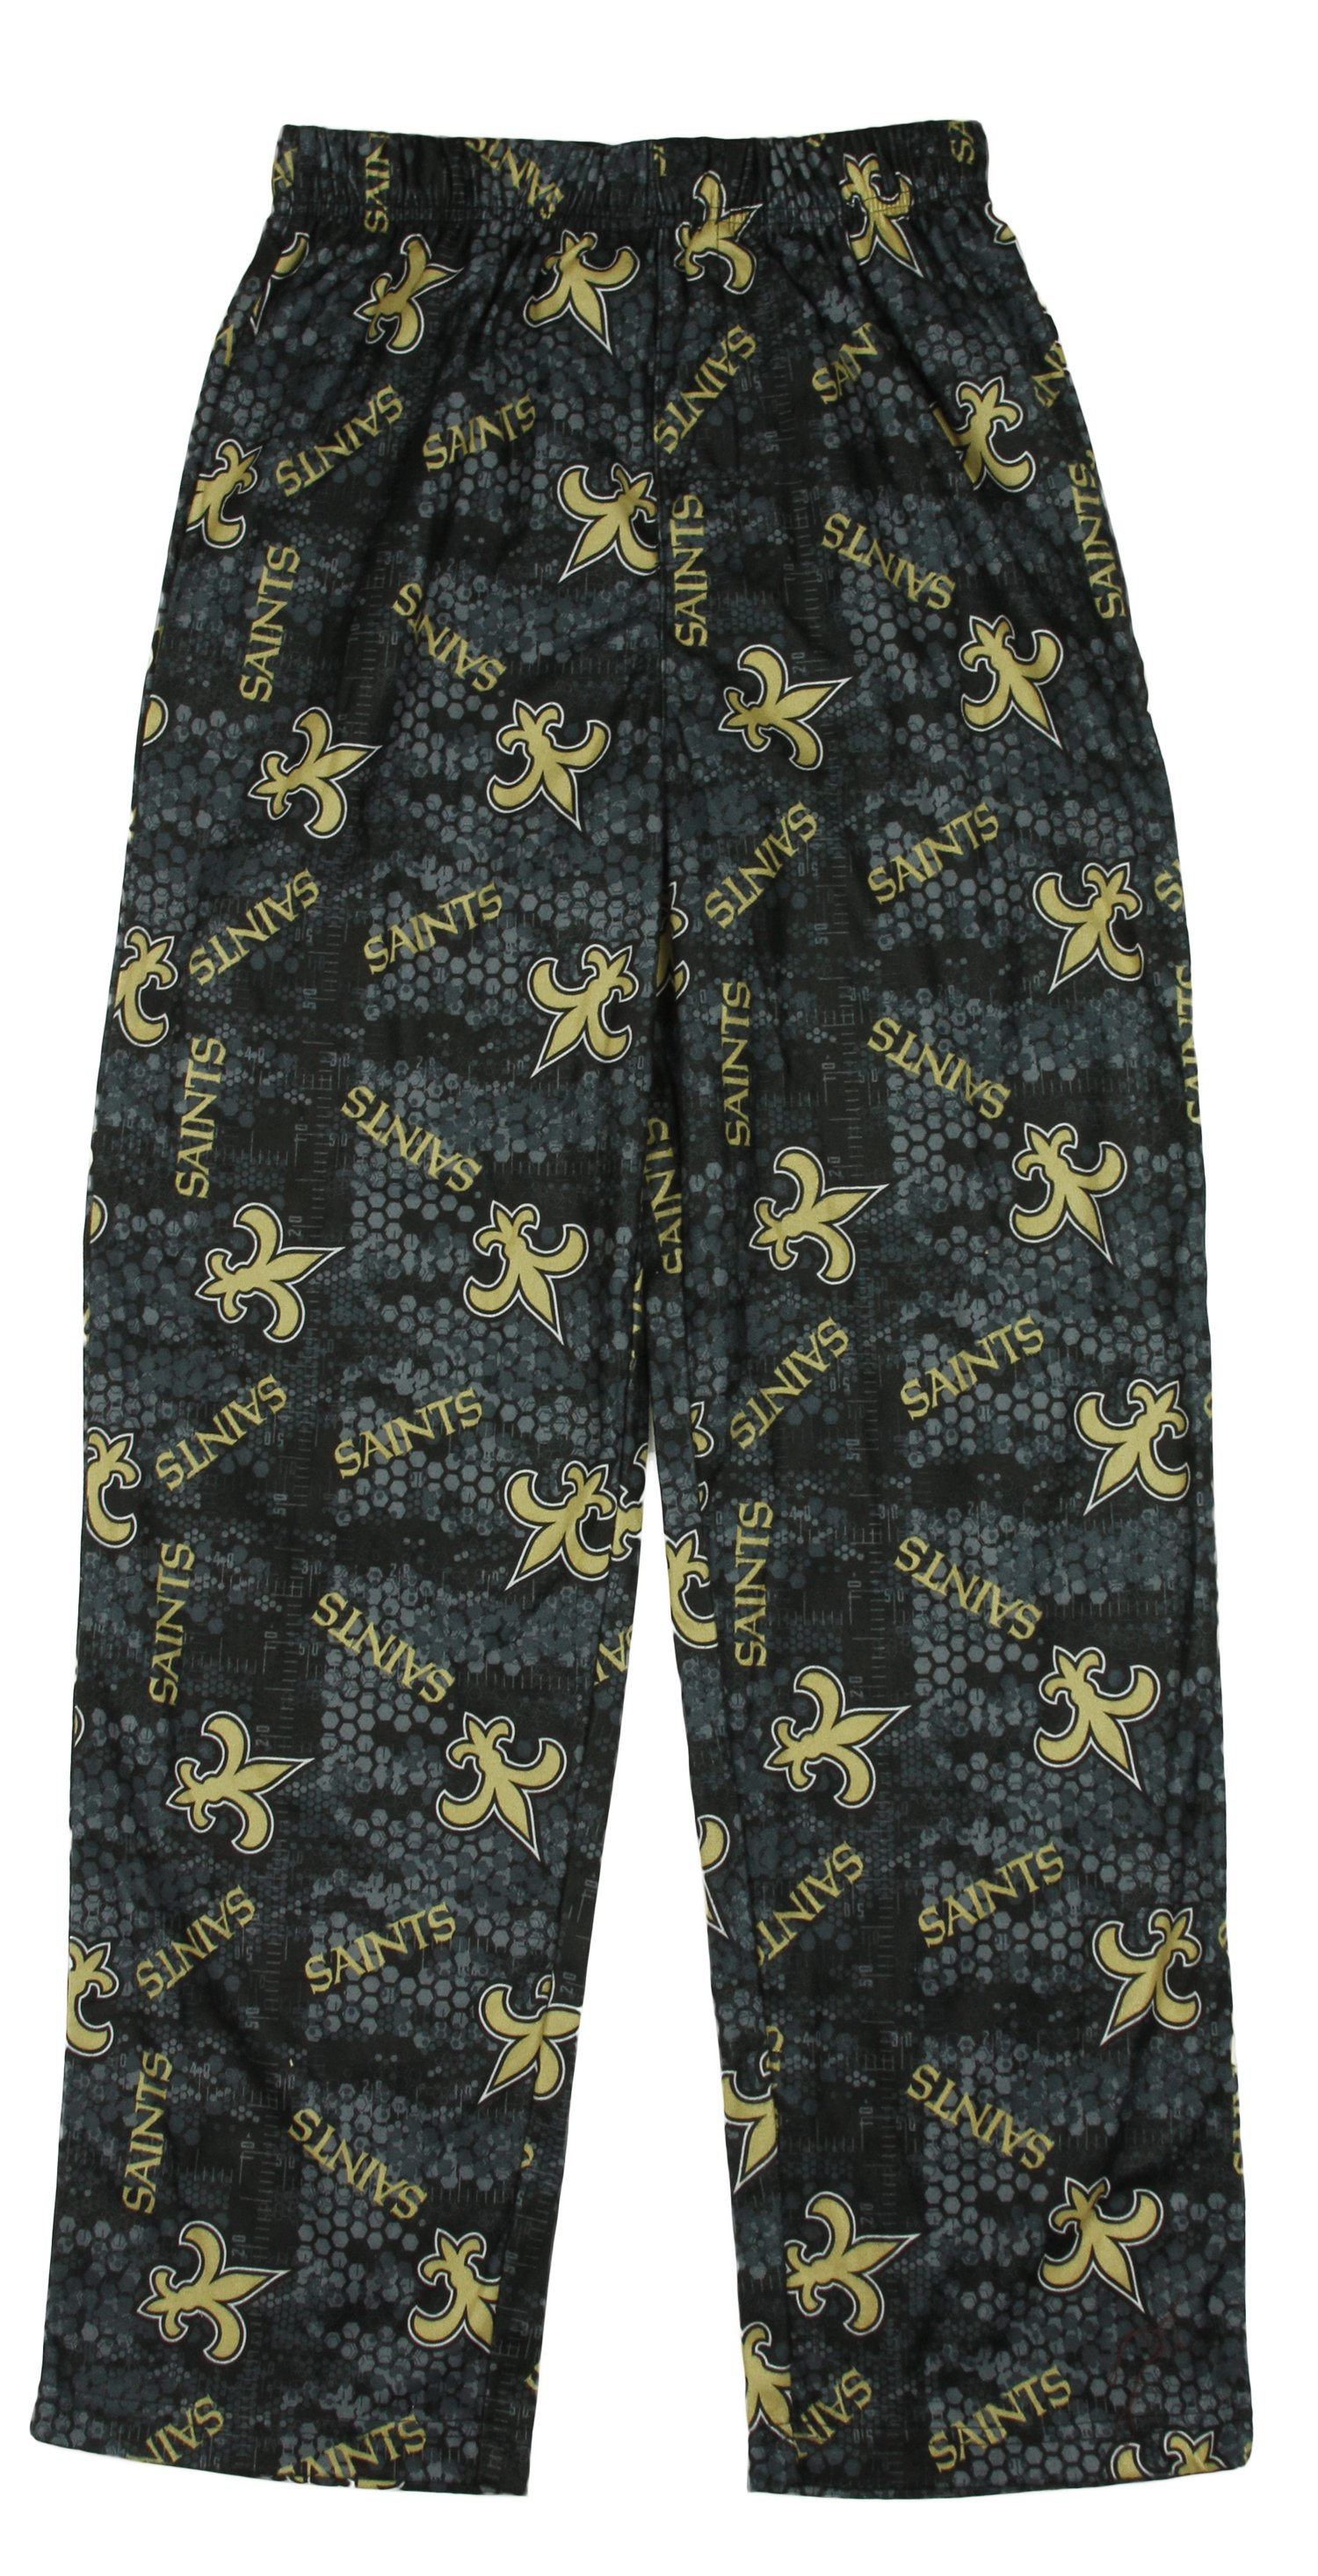 NFL Football Little Kids   Youth Boys New Orleans Saints Lounge Pajama PJ Pants by